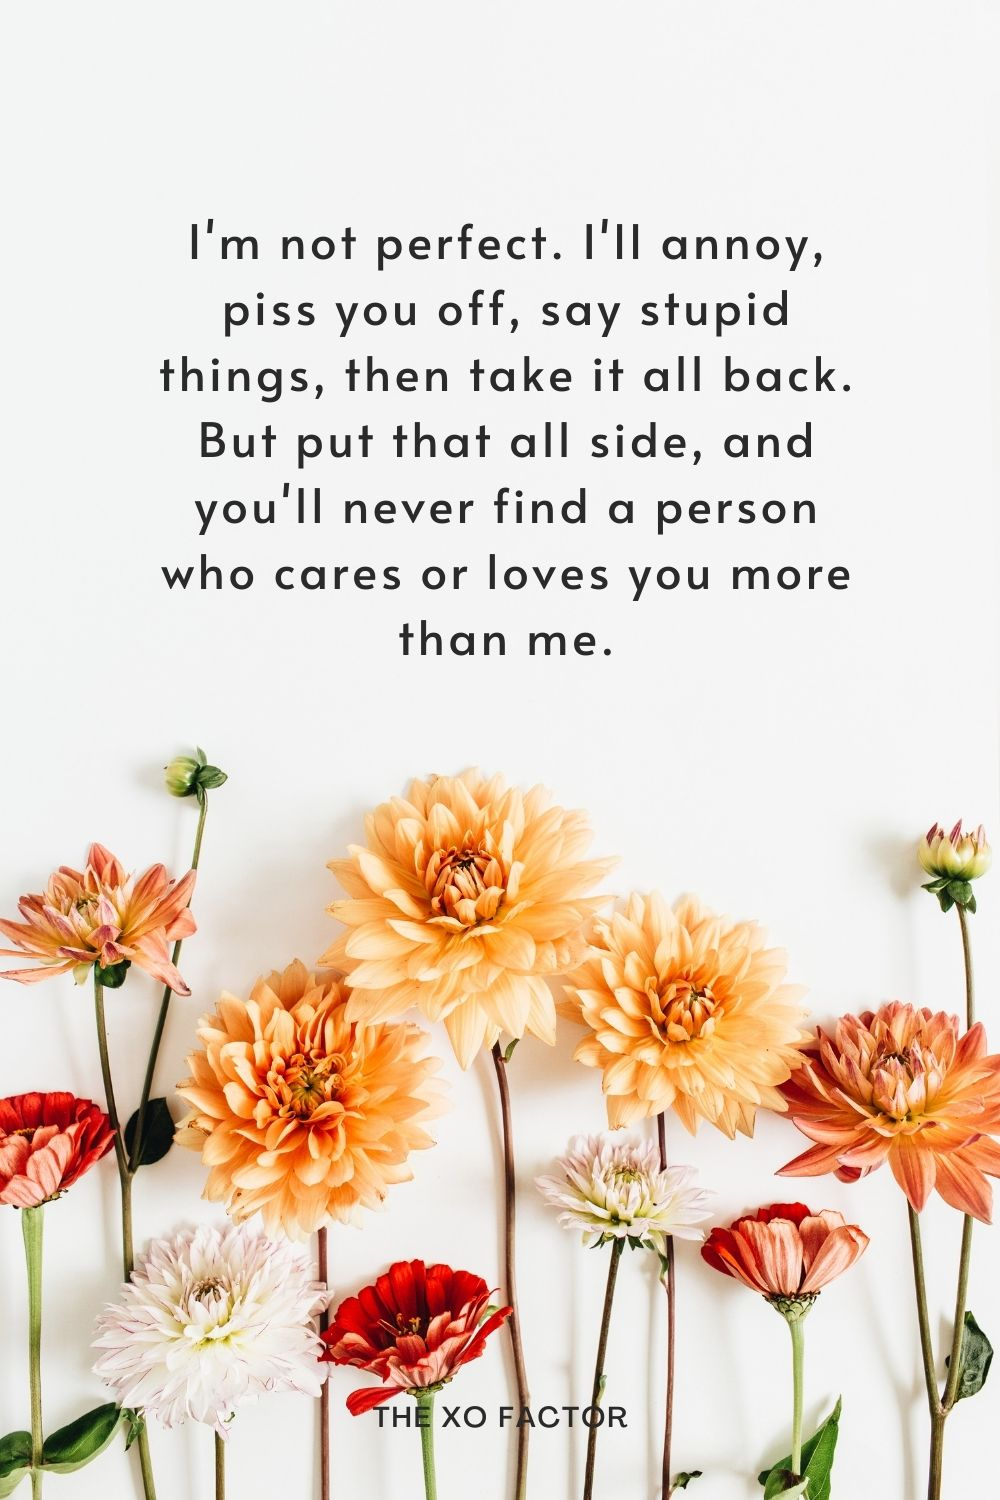 I'm not perfect. I'll annoy, piss you off, say stupid things, then take it all back. But put that all side, and you'll never find a person who cares or loves you more than me.